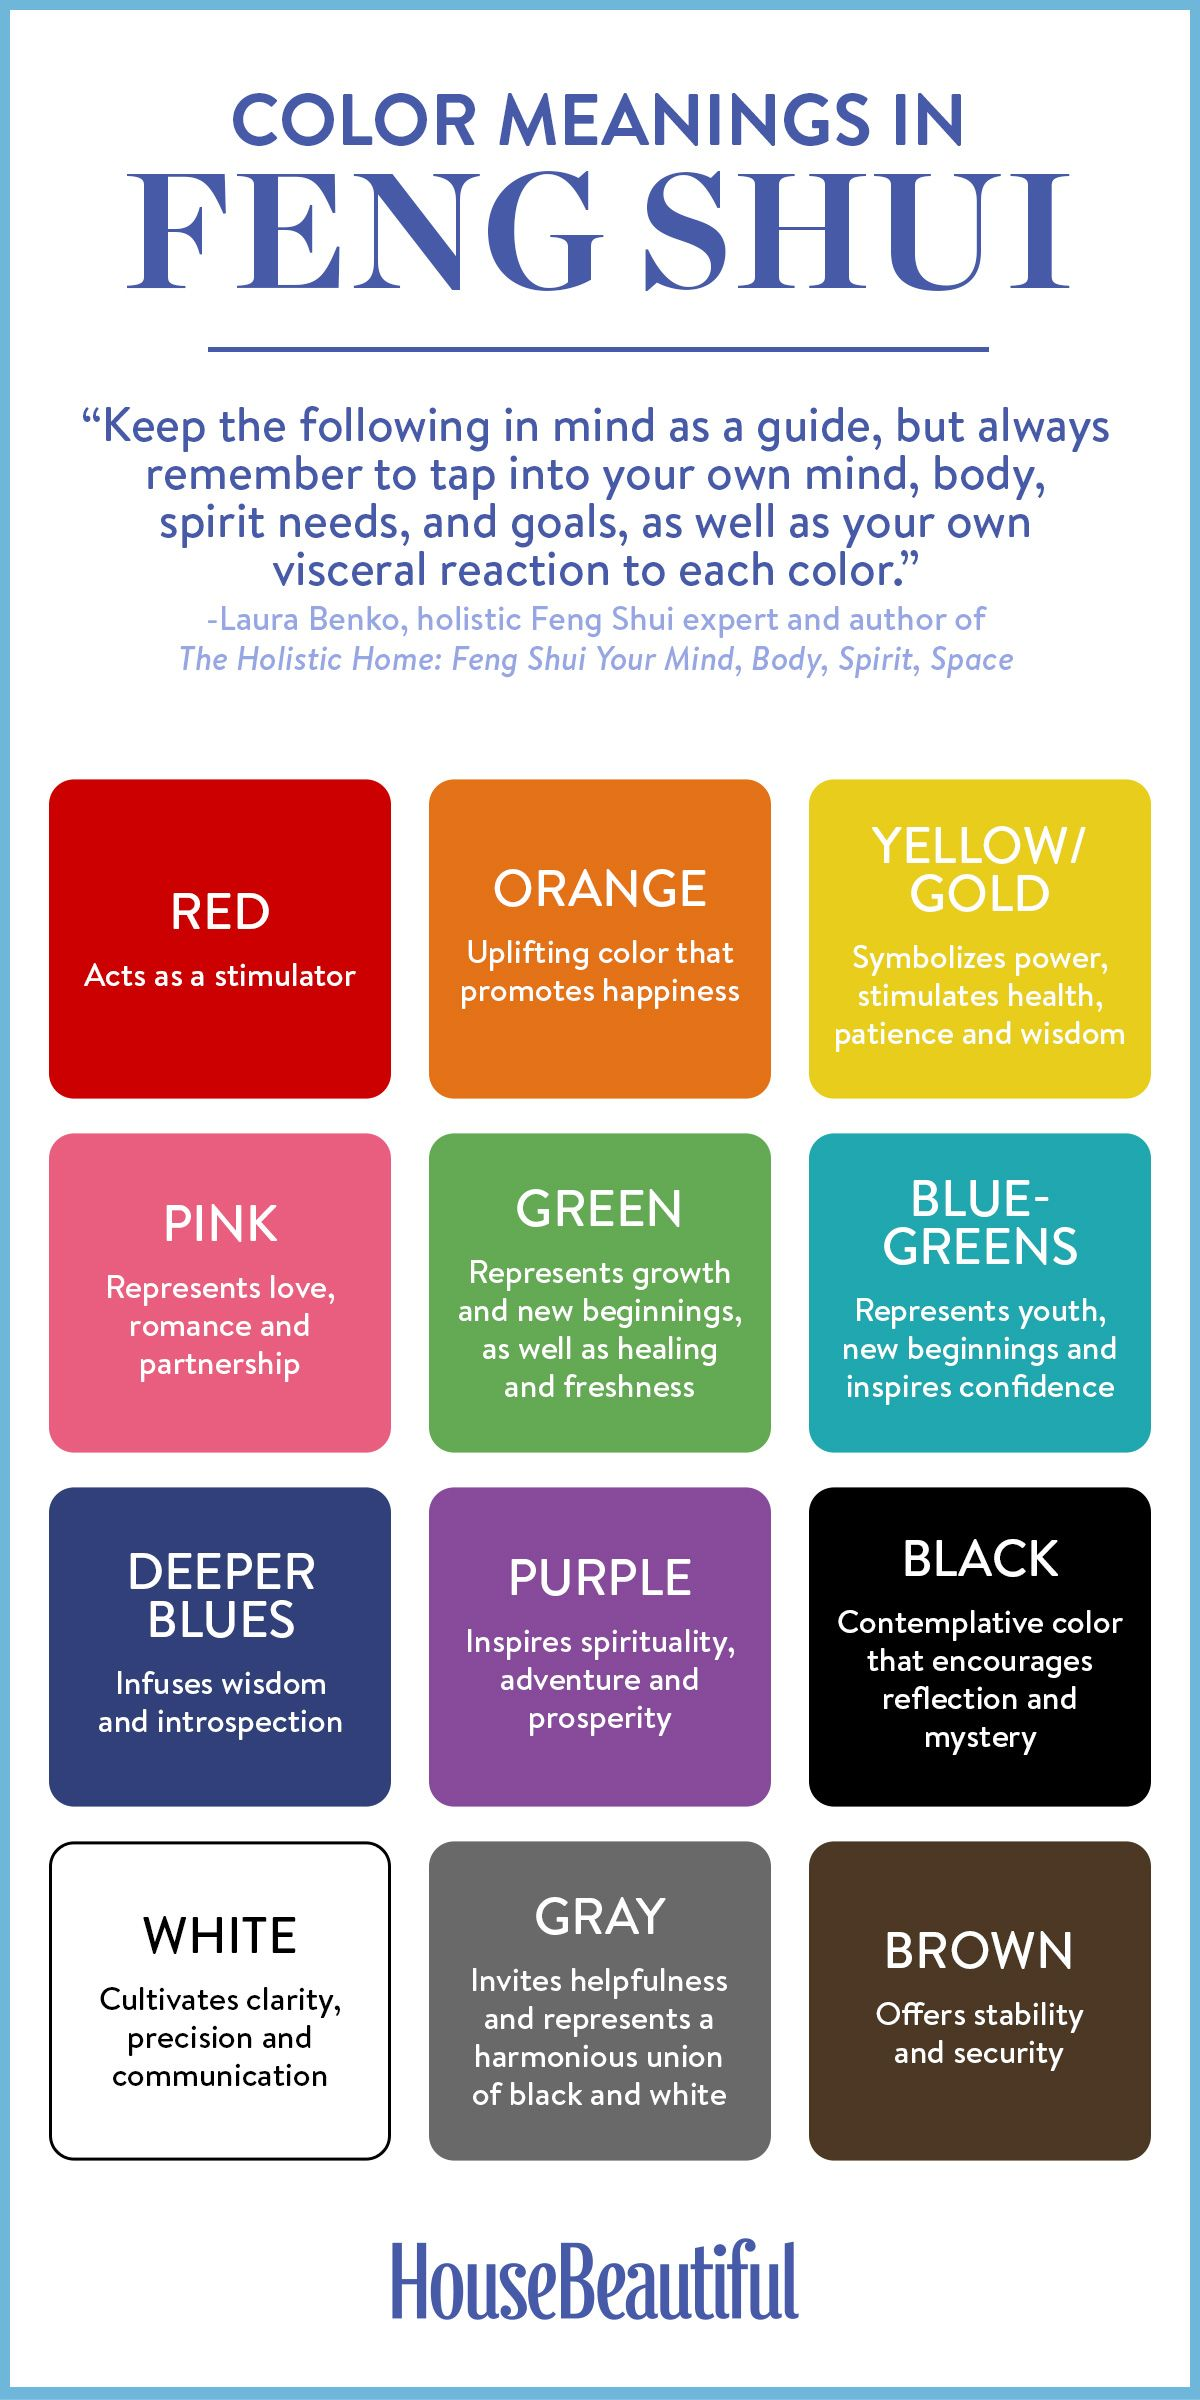 Painting For Living Room Feng Shui Yellow Color Scheme How To Choose The Perfect Way Paint Colors Any In Your House Using